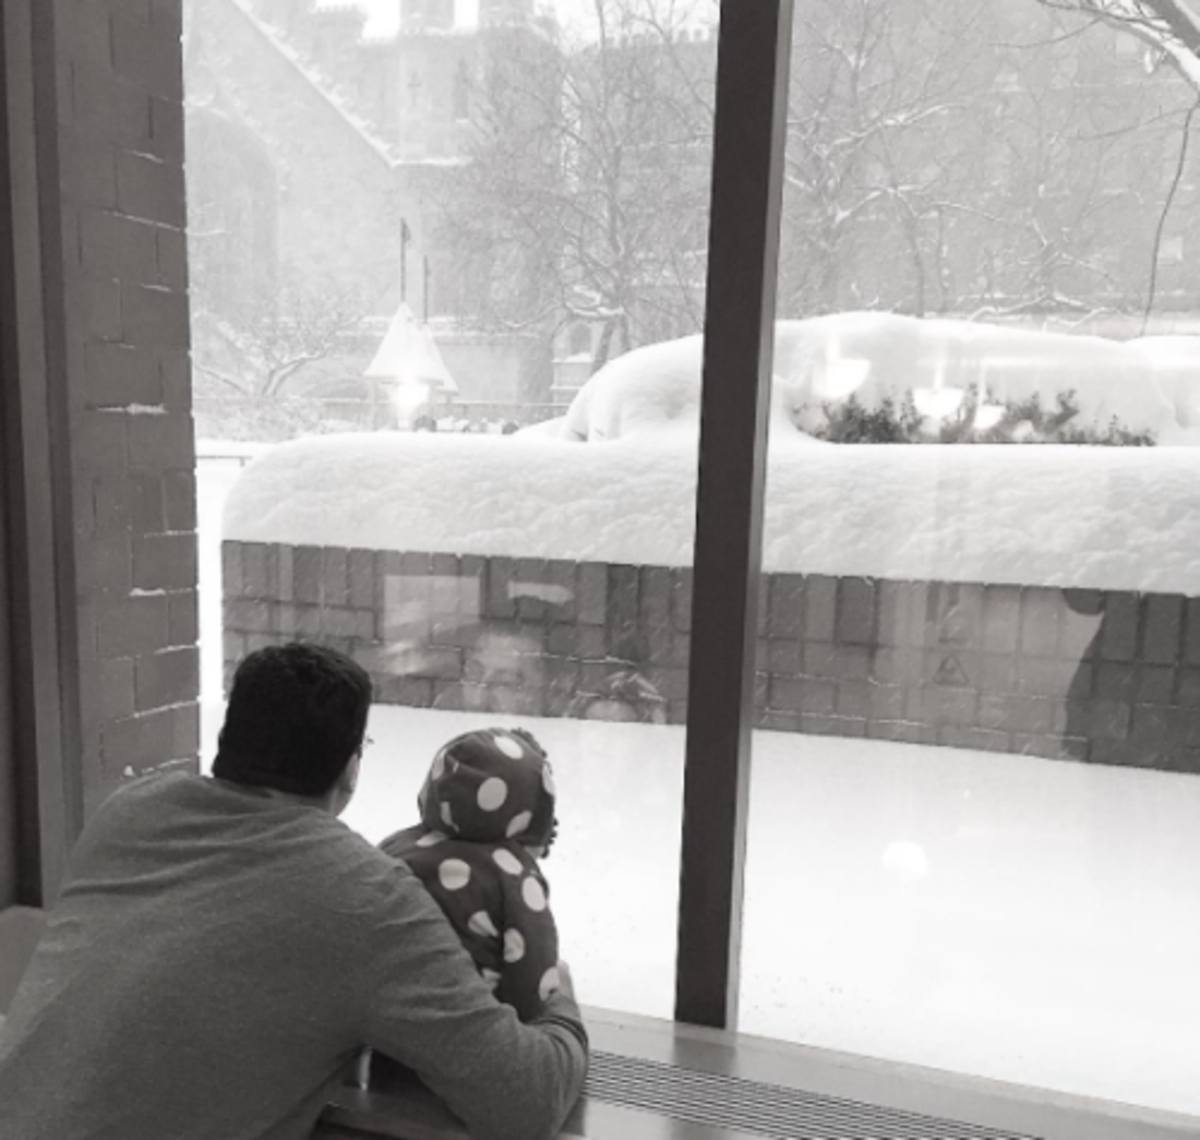 The Cutest Kid Pics from SNOWMAGEDDON 2016 @nycdadsgroup